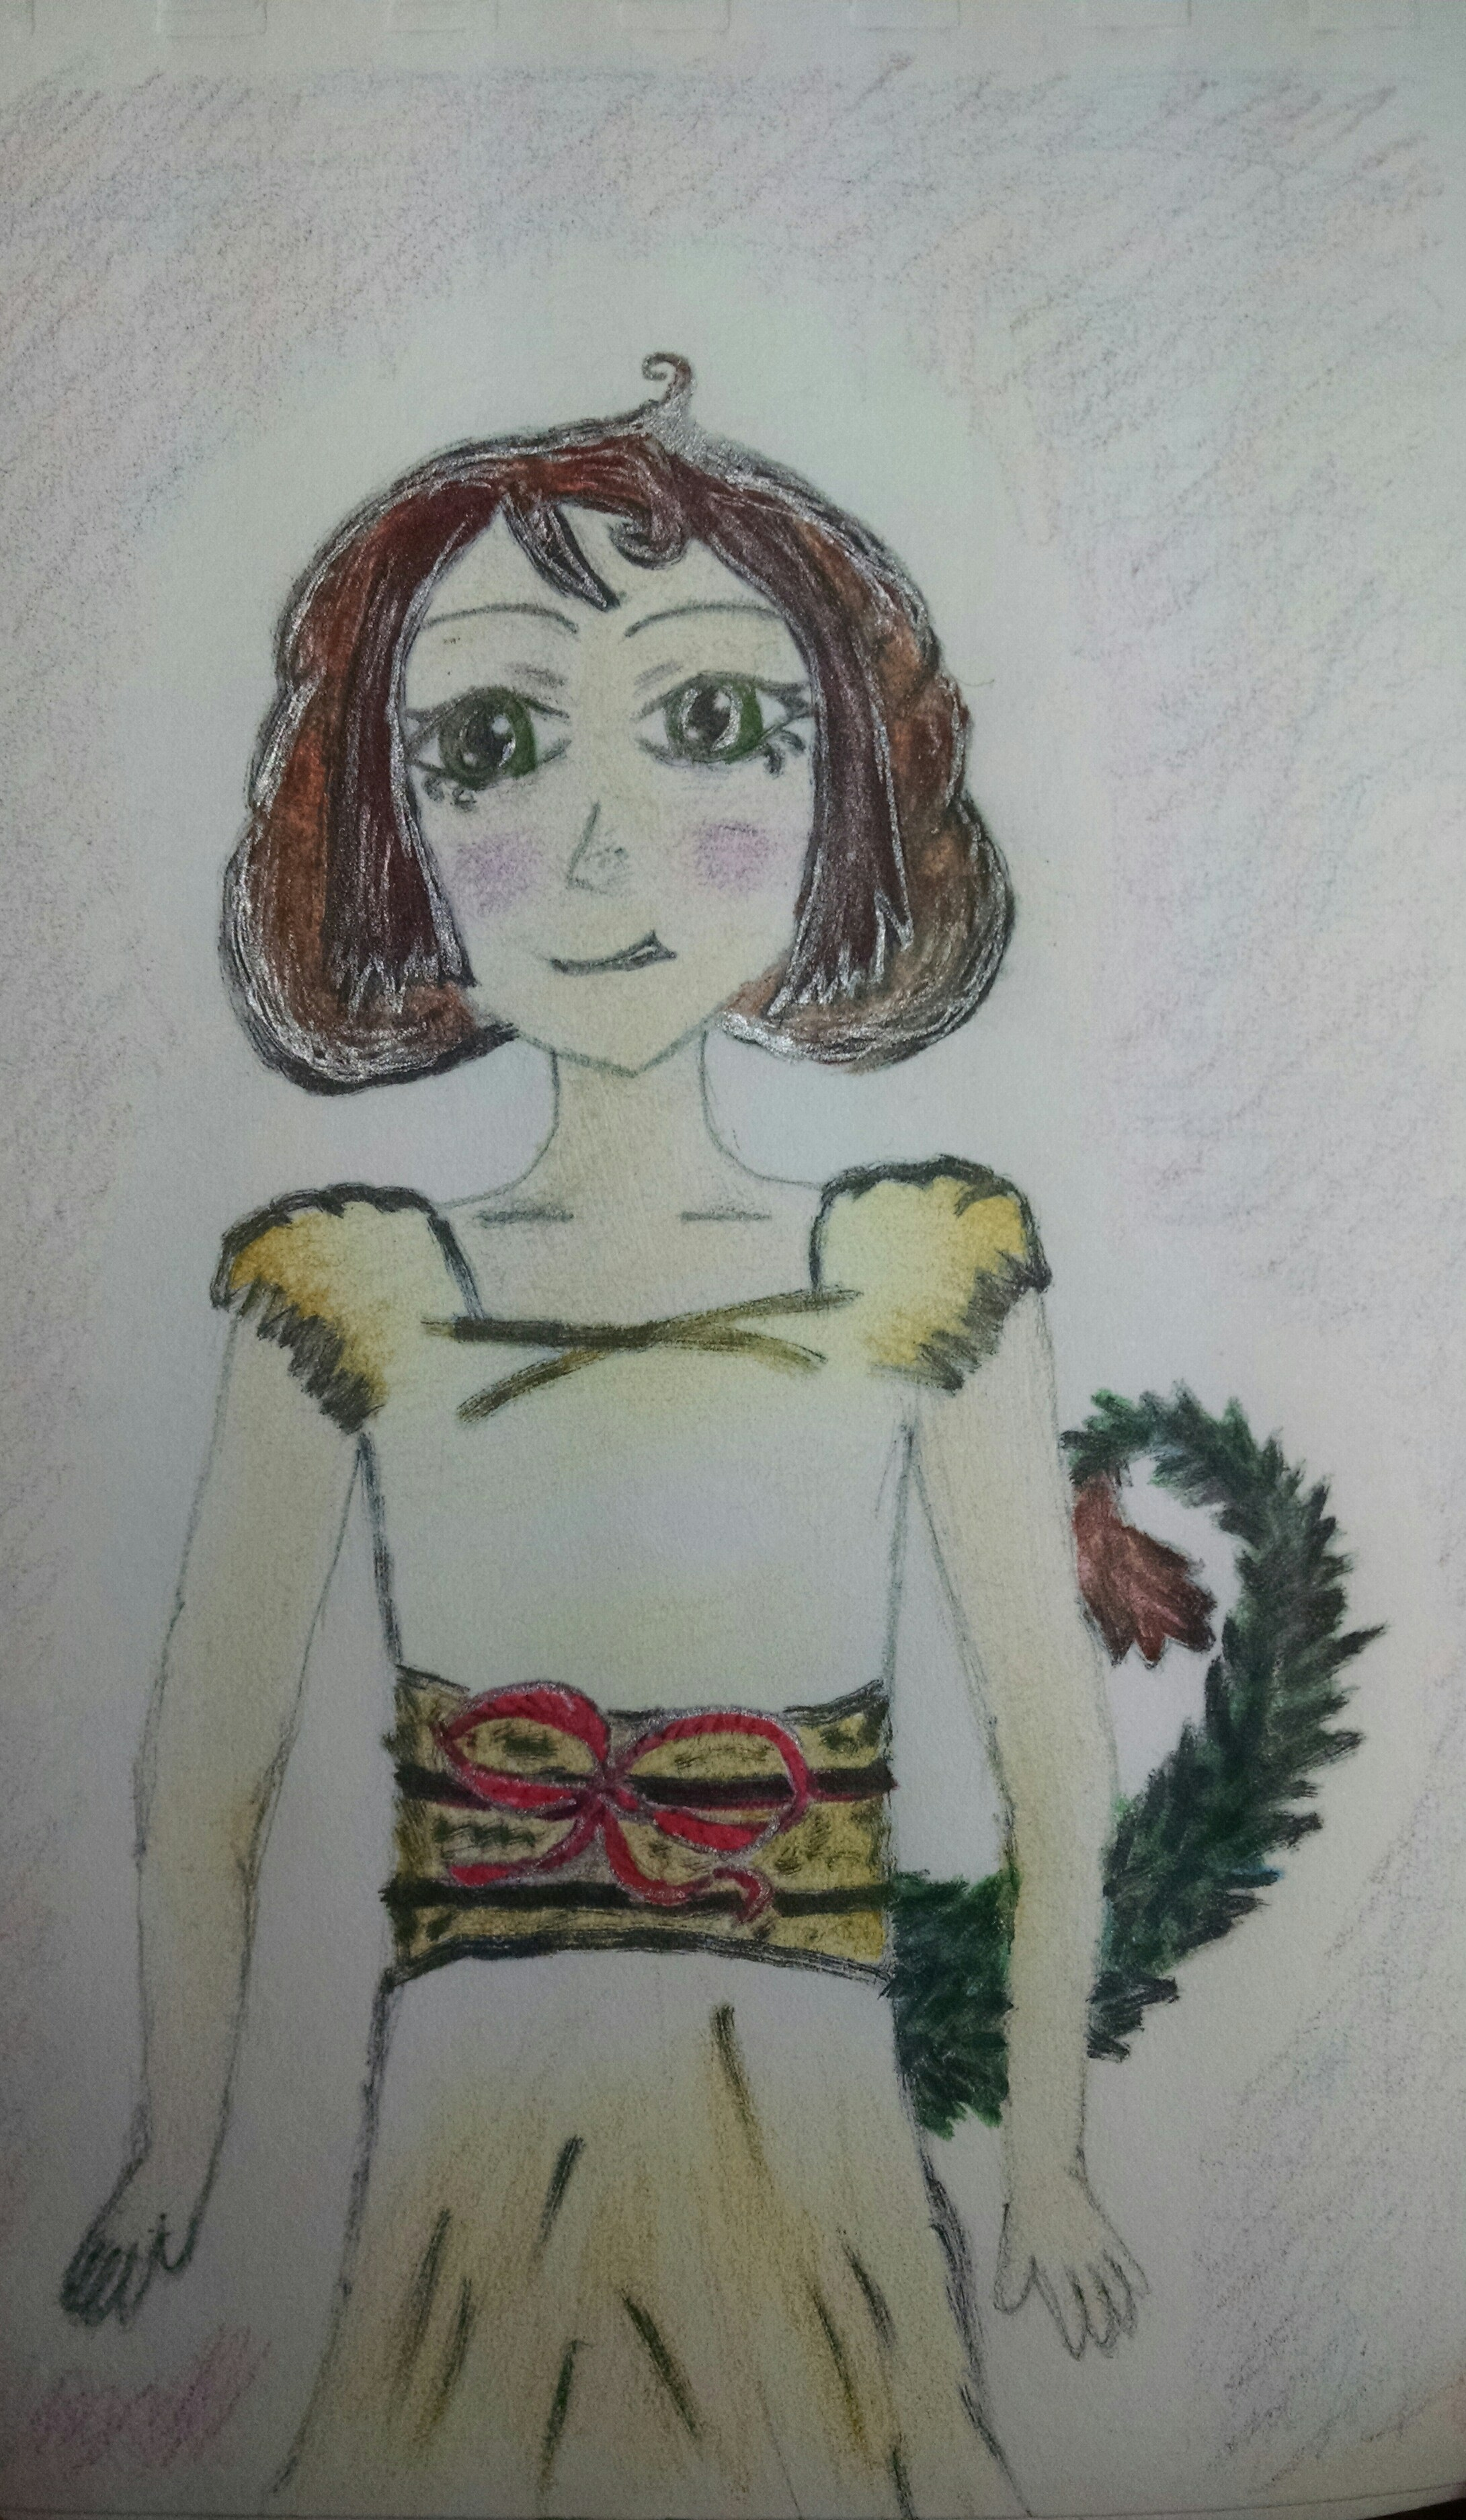 Drawing created by Debbie. Thank you!